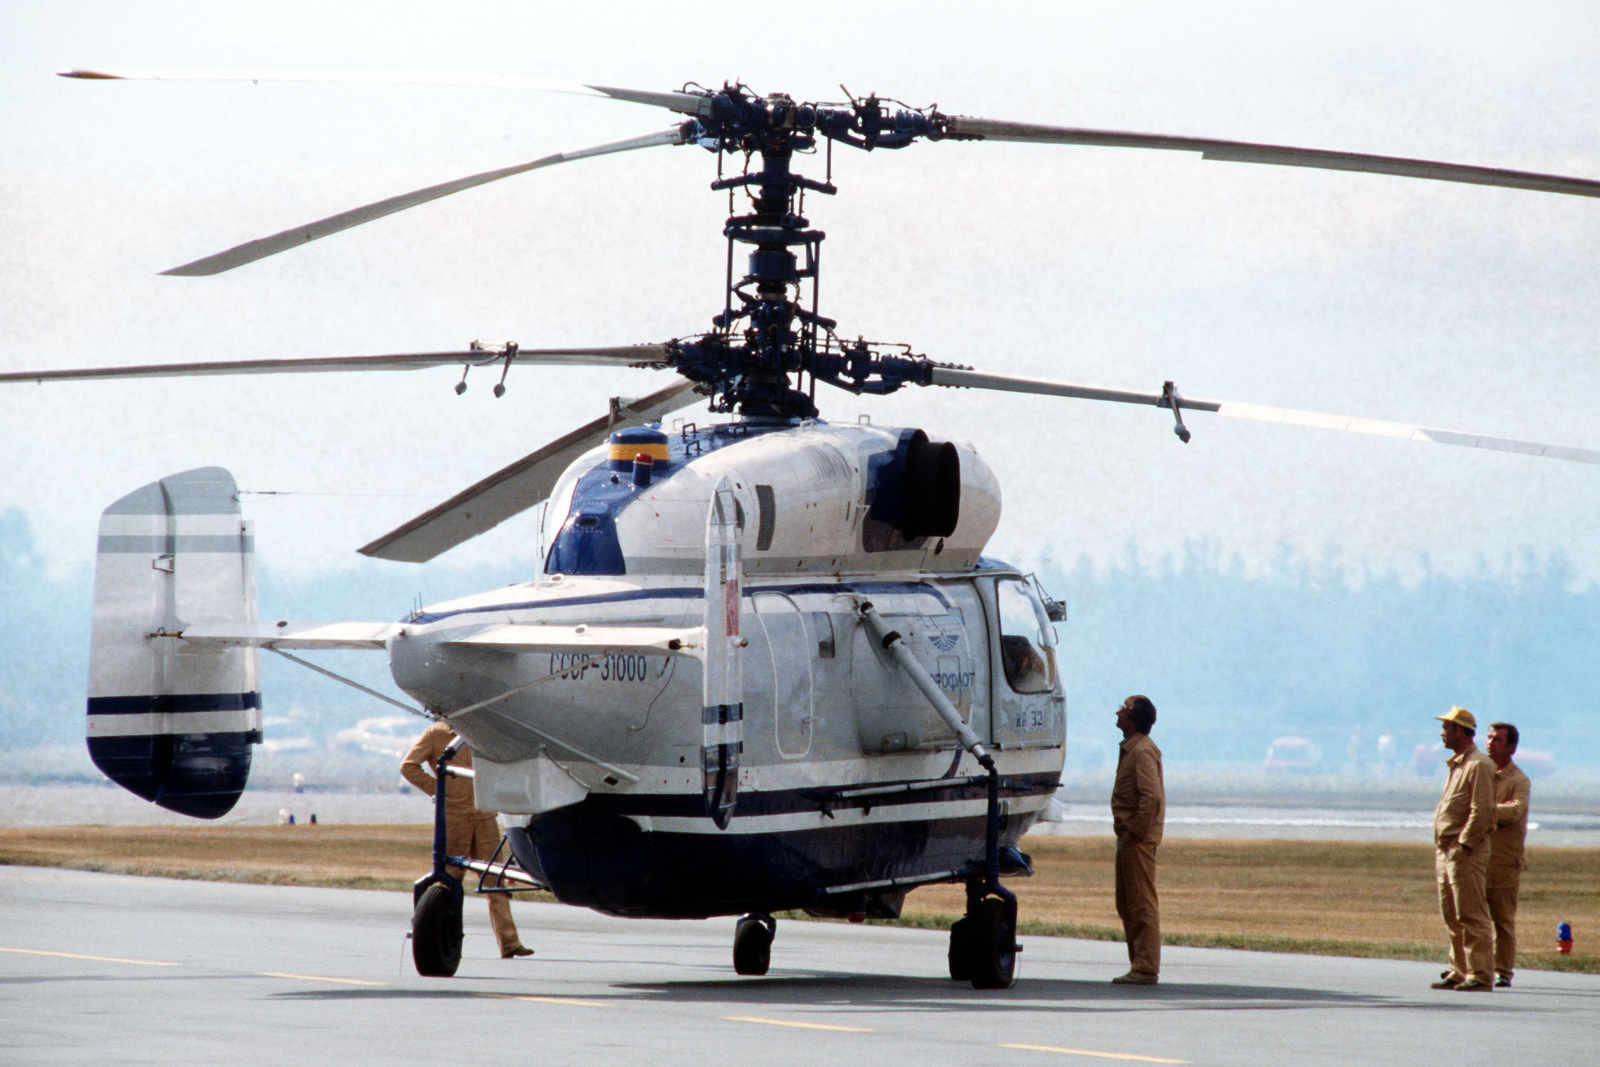 Ground crewmen look over a Soviet Ka-32 Helix helicopter during Airshow Canada '89